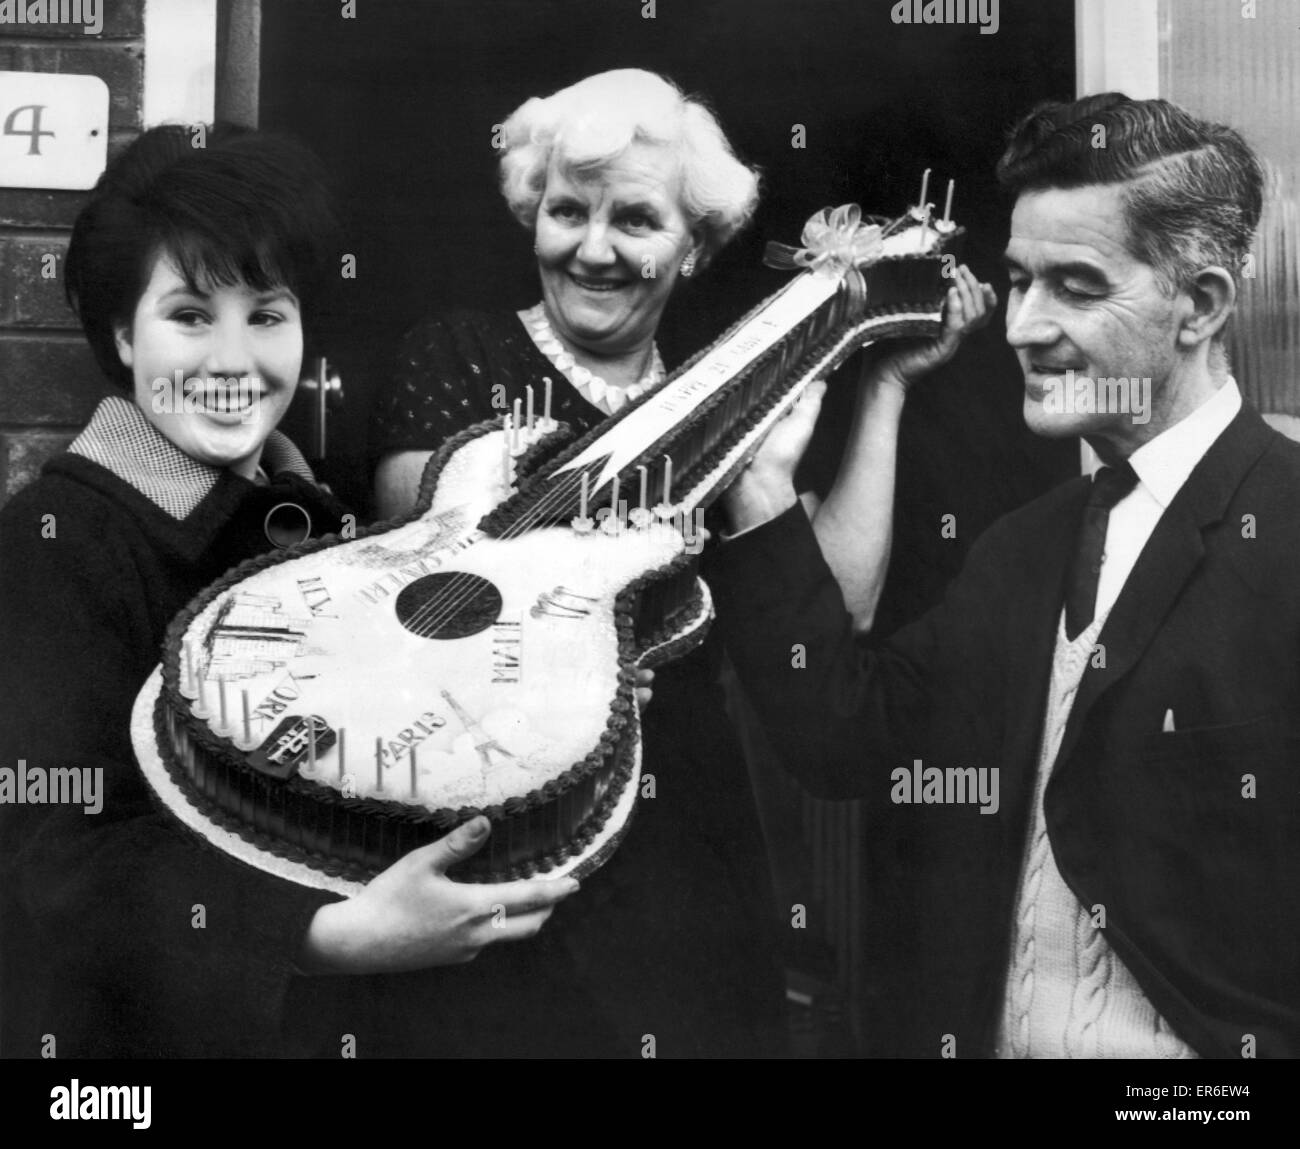 Beatle fan, Jeanette Trust 16 from West Derby, Liverpool, presents Harold and Louise Harrison, parents of George - Stock Image